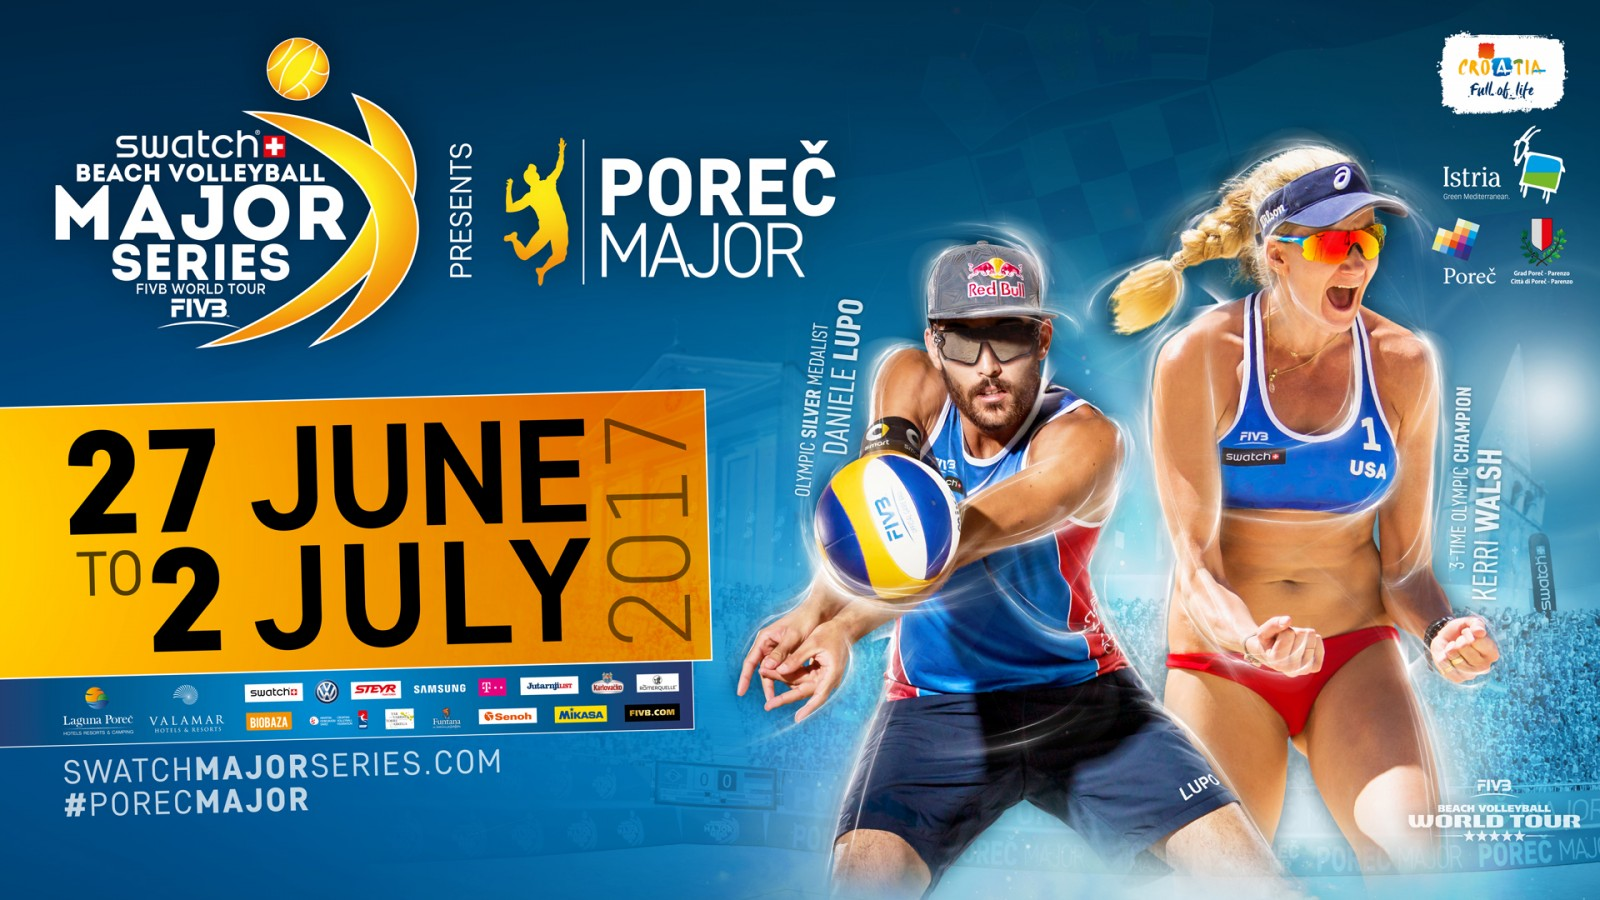 FIVB Beach Volleyball World Tour 2017